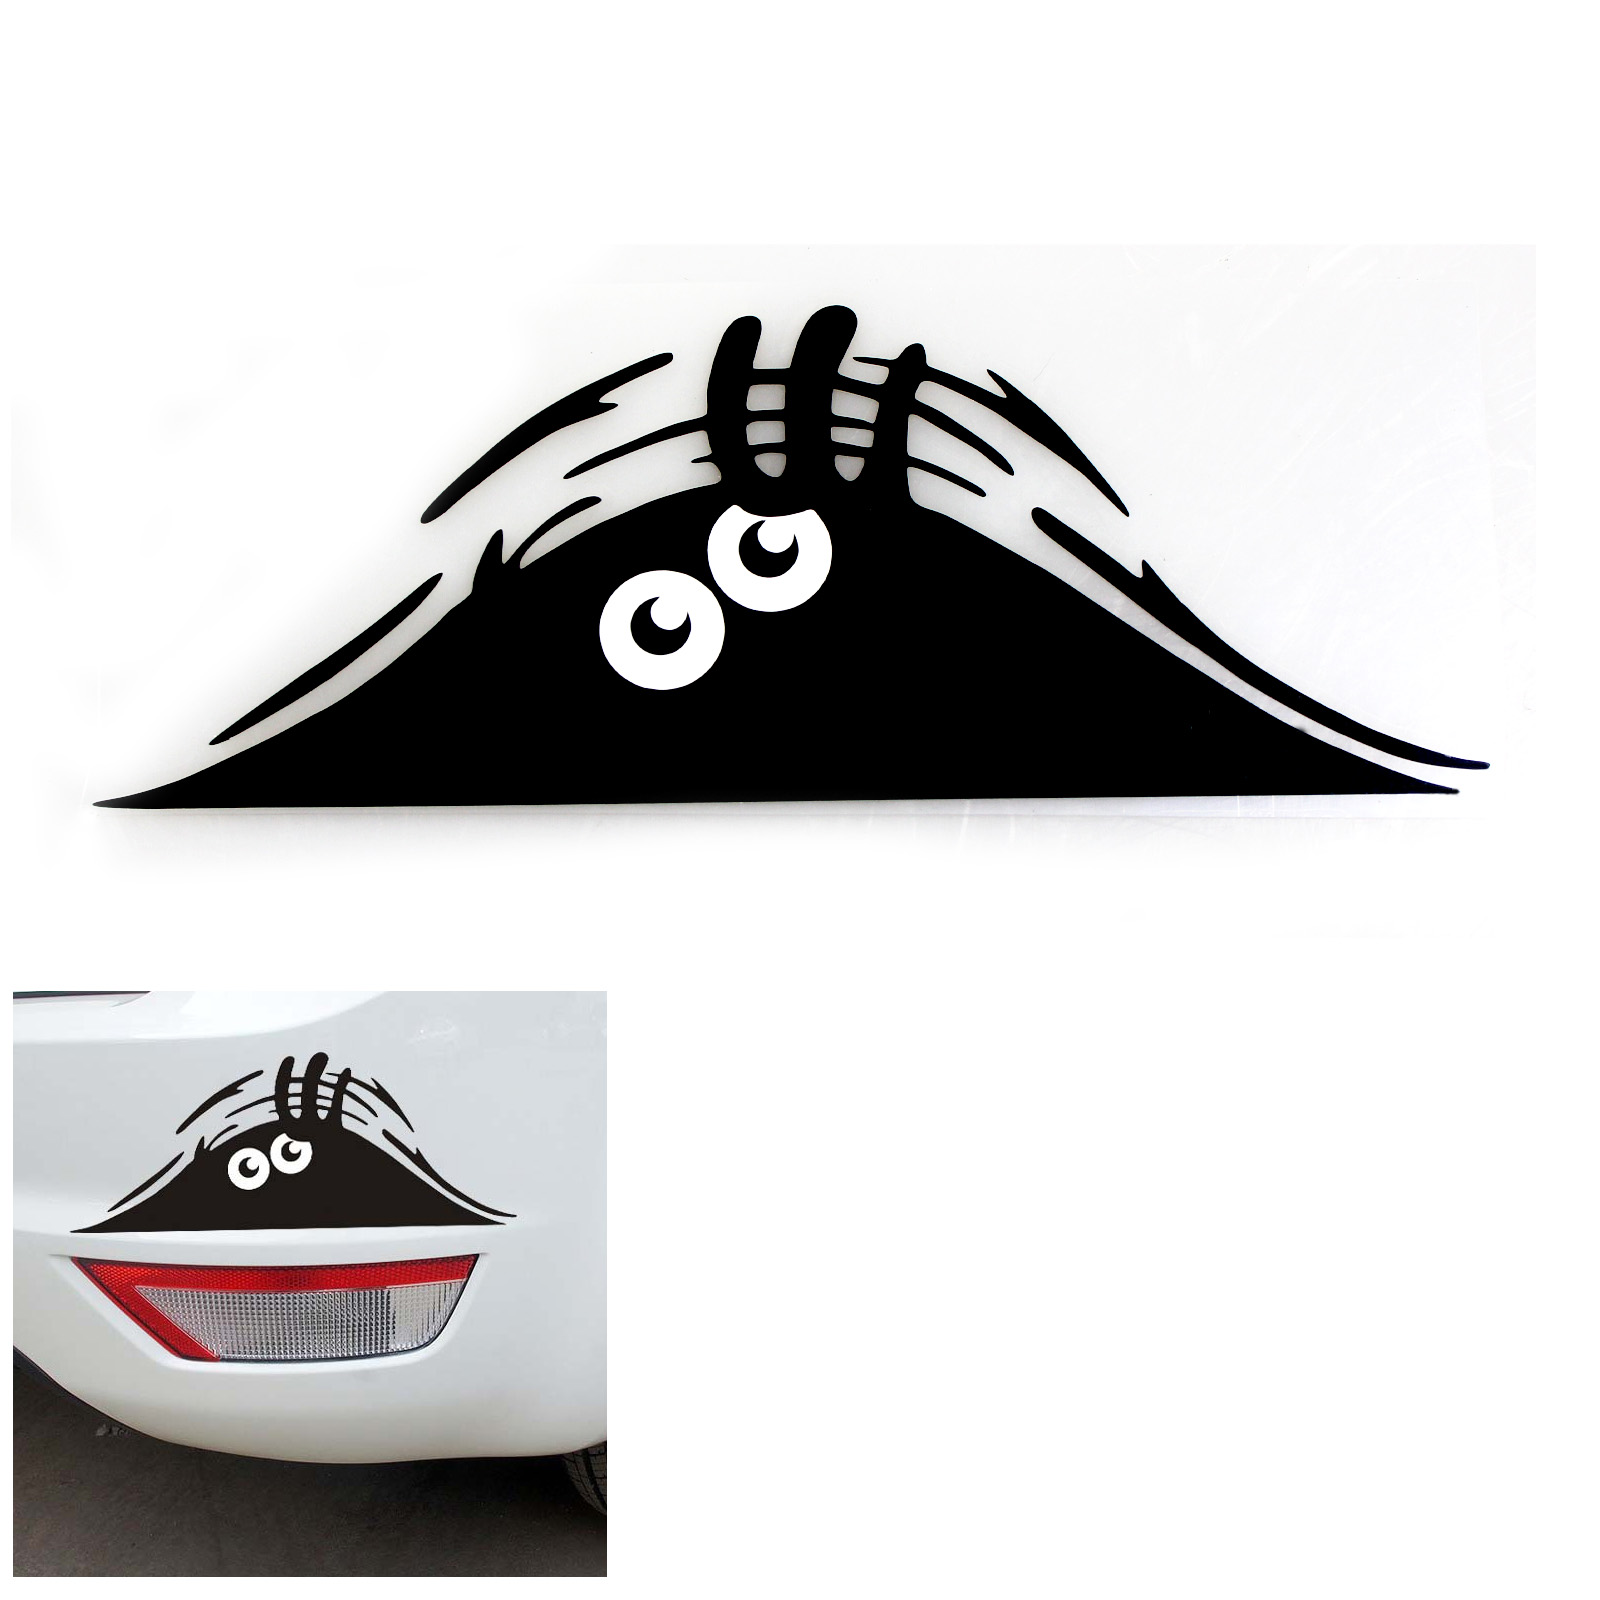 Car stickers design images - Car Sticker Graphic Design Does Not Apply